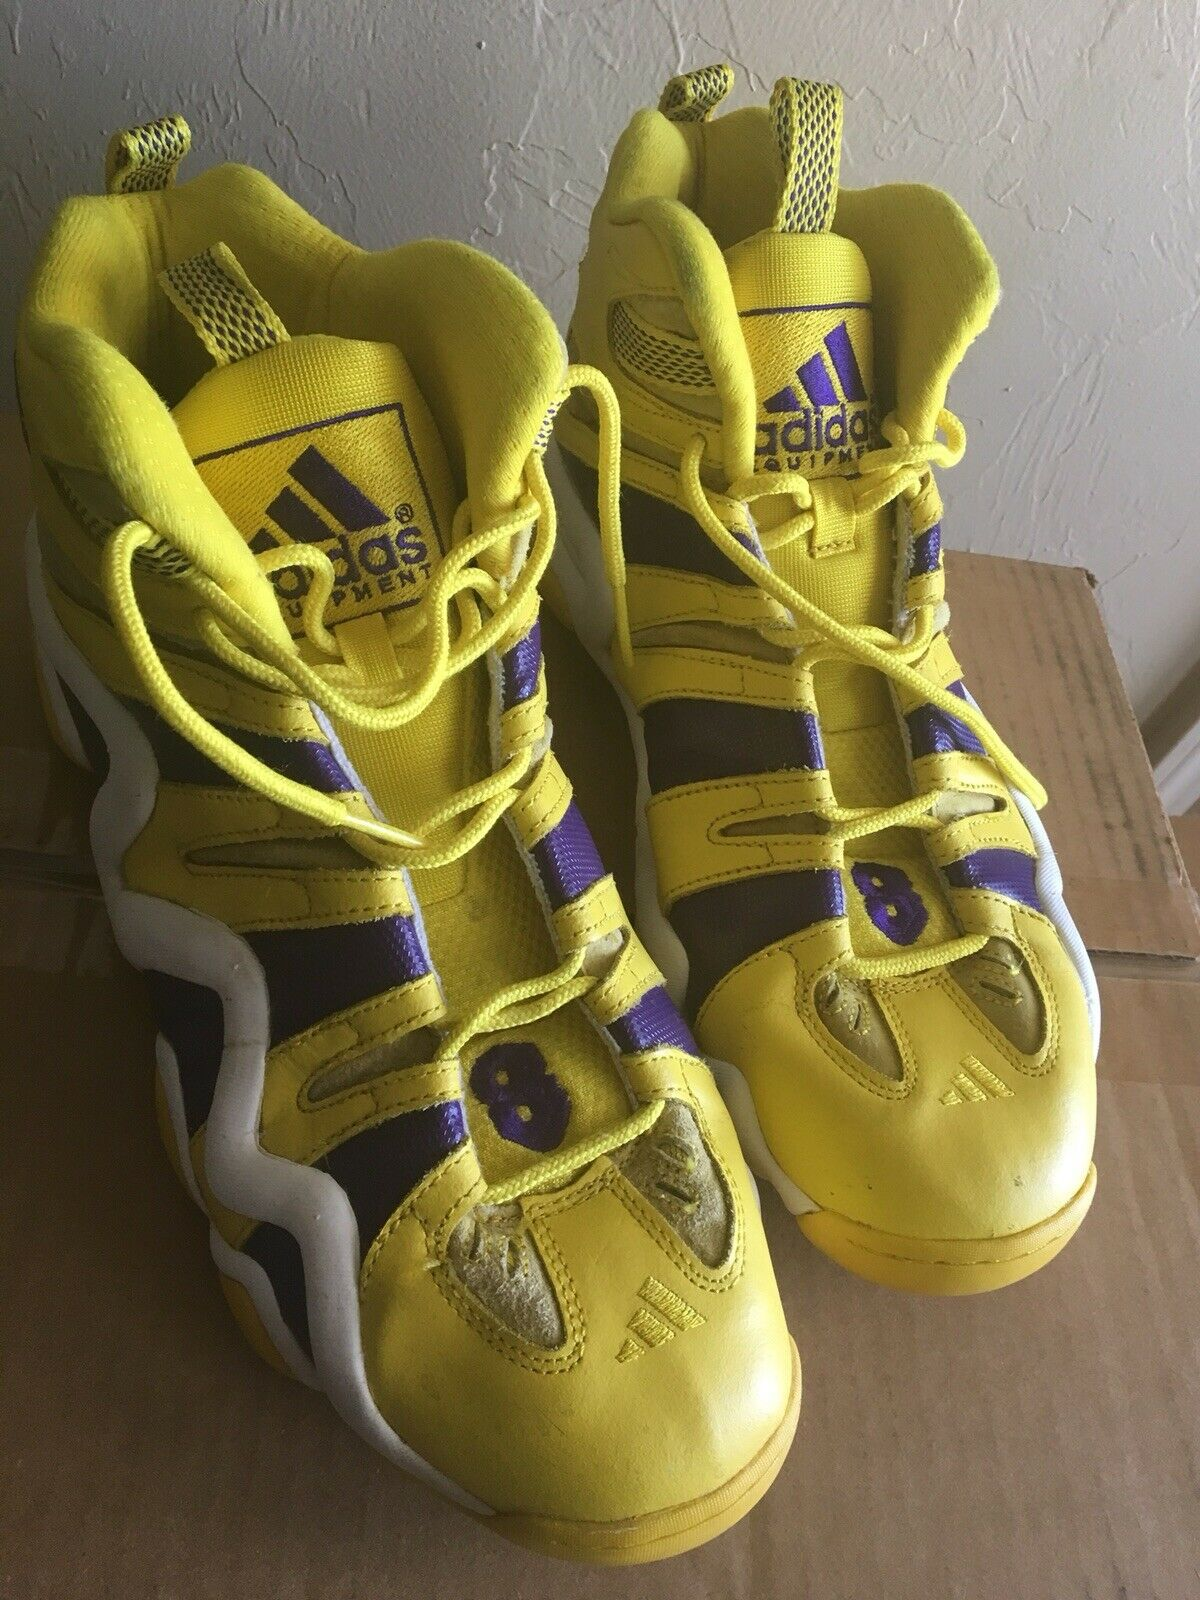 1d2813cc9f81b Rare Adidas Crazy 8 Yellow All Star PE Kobe Bryant Sz. 14 Lakers colorway No